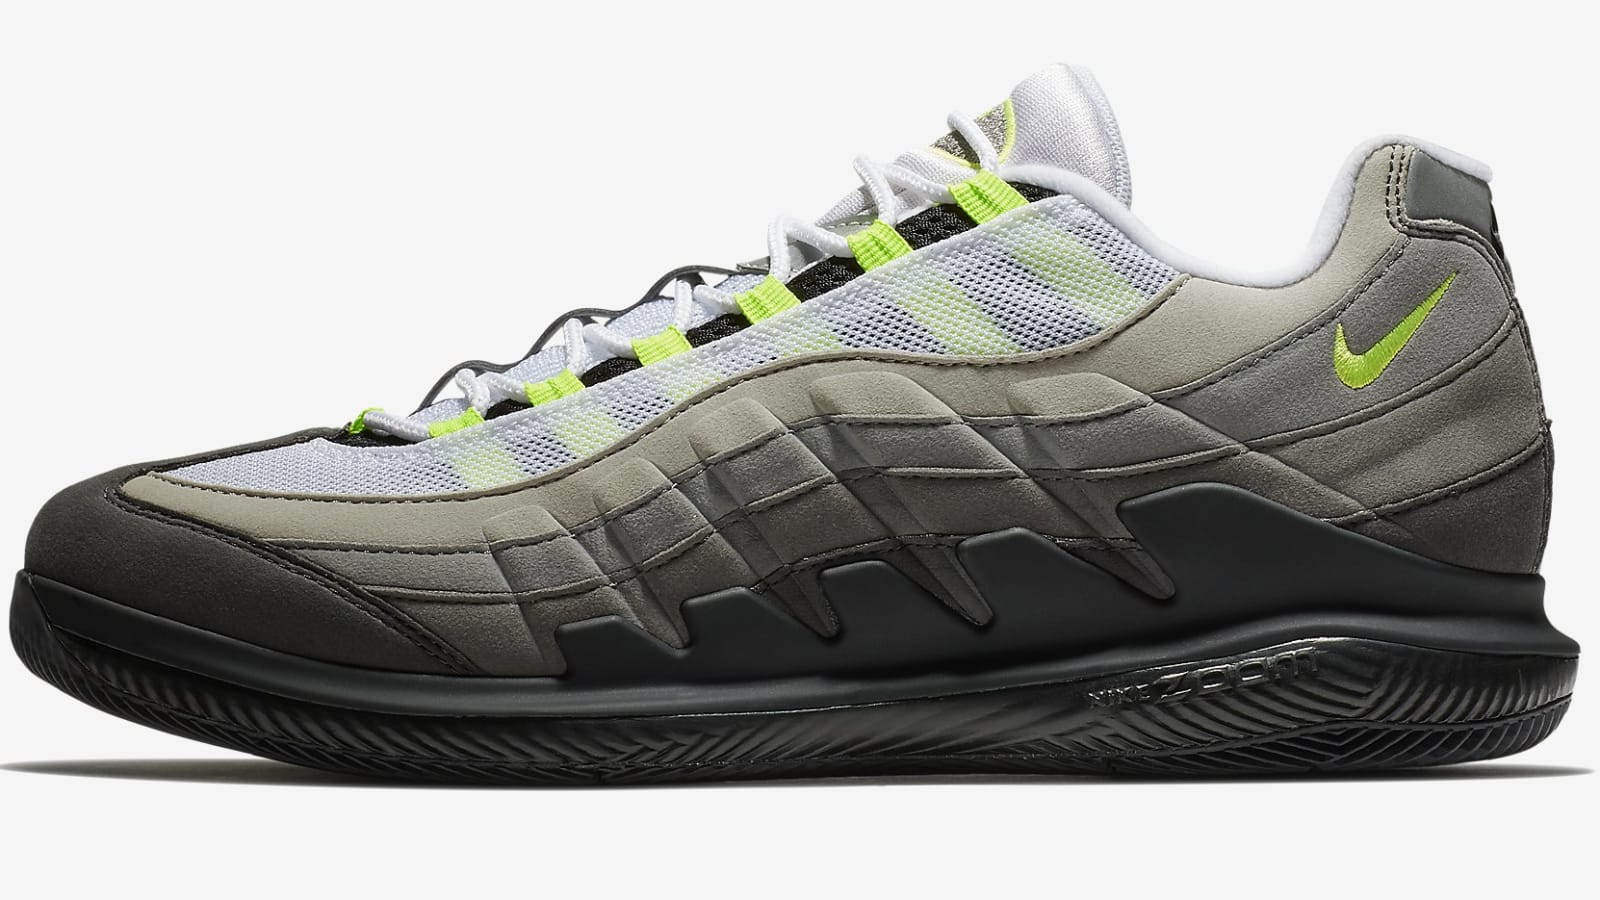 e907e7160 Release Date Roundup  The Sneakers You Need to Check Out this ...